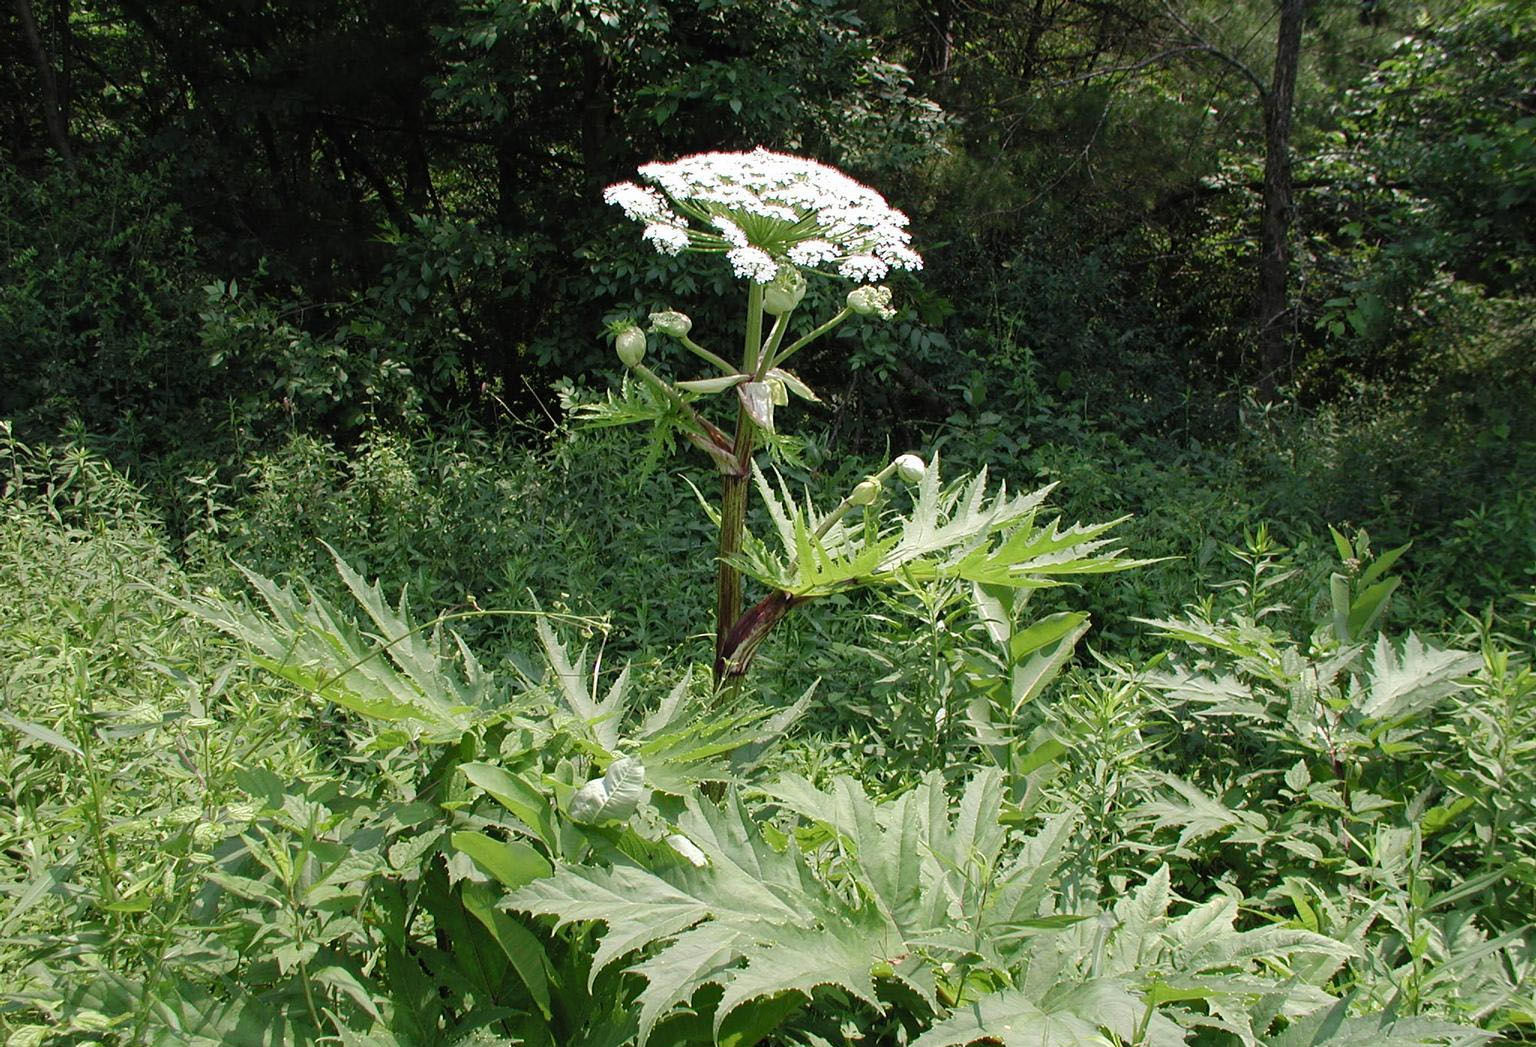 Giant Hog Weed Giant Hogweed, A Toxic Plant You Need To Know About In Va